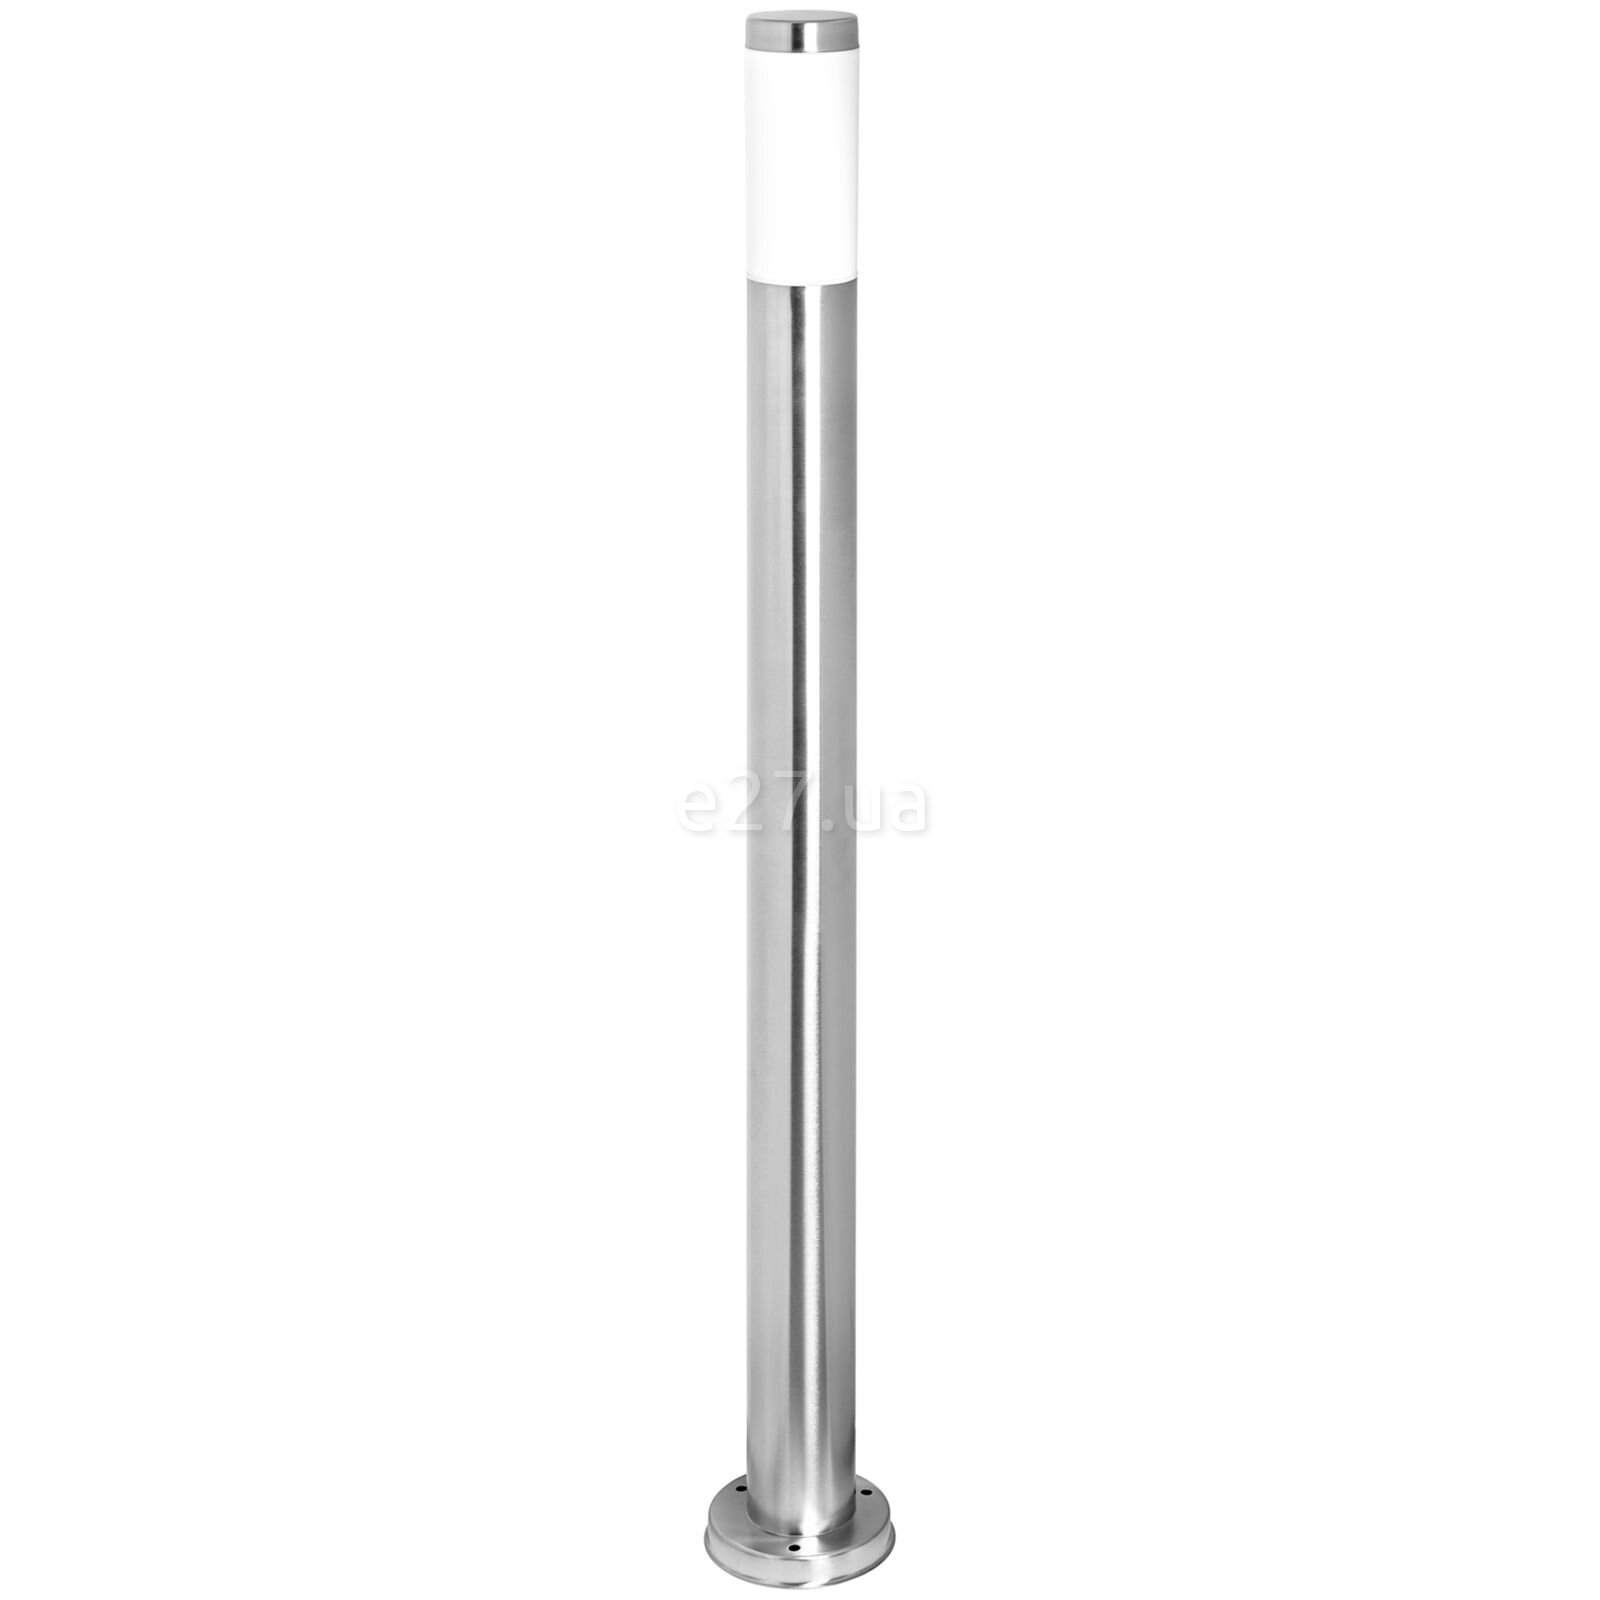 Delux Pole 01100 (90011346)